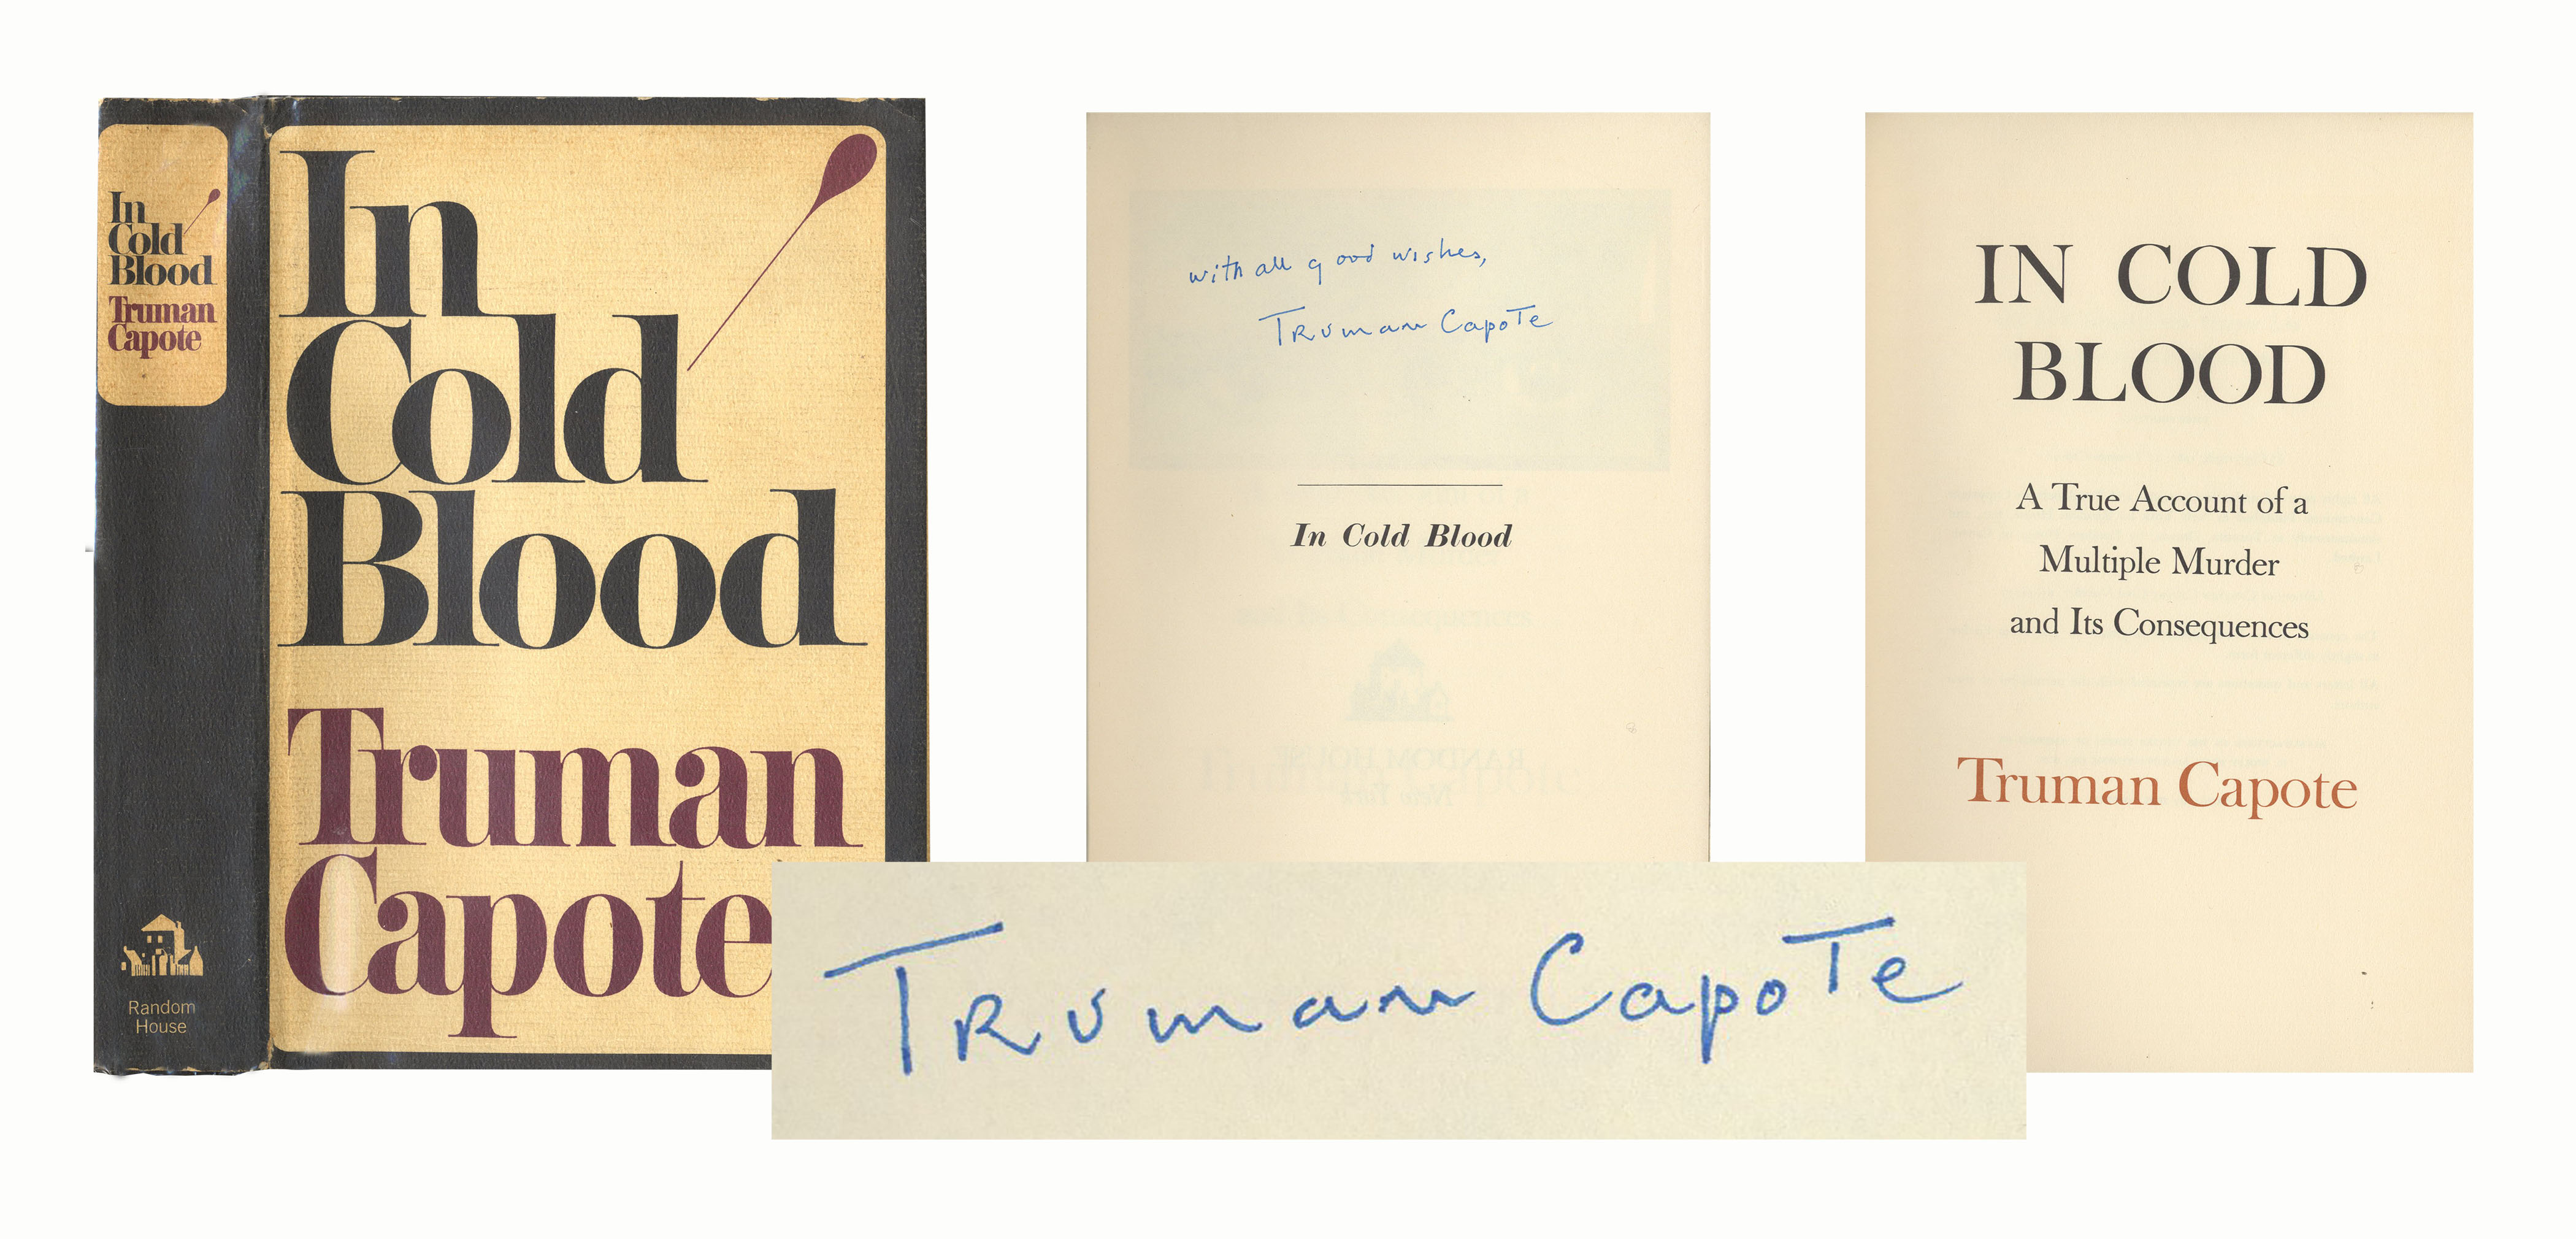 truman capotes in cold blood should stay in public school libraries Truman capote and the legacy of in cold come the focal point of reading and discussions in community libraries in 2008, in cold blood was does not stay on.